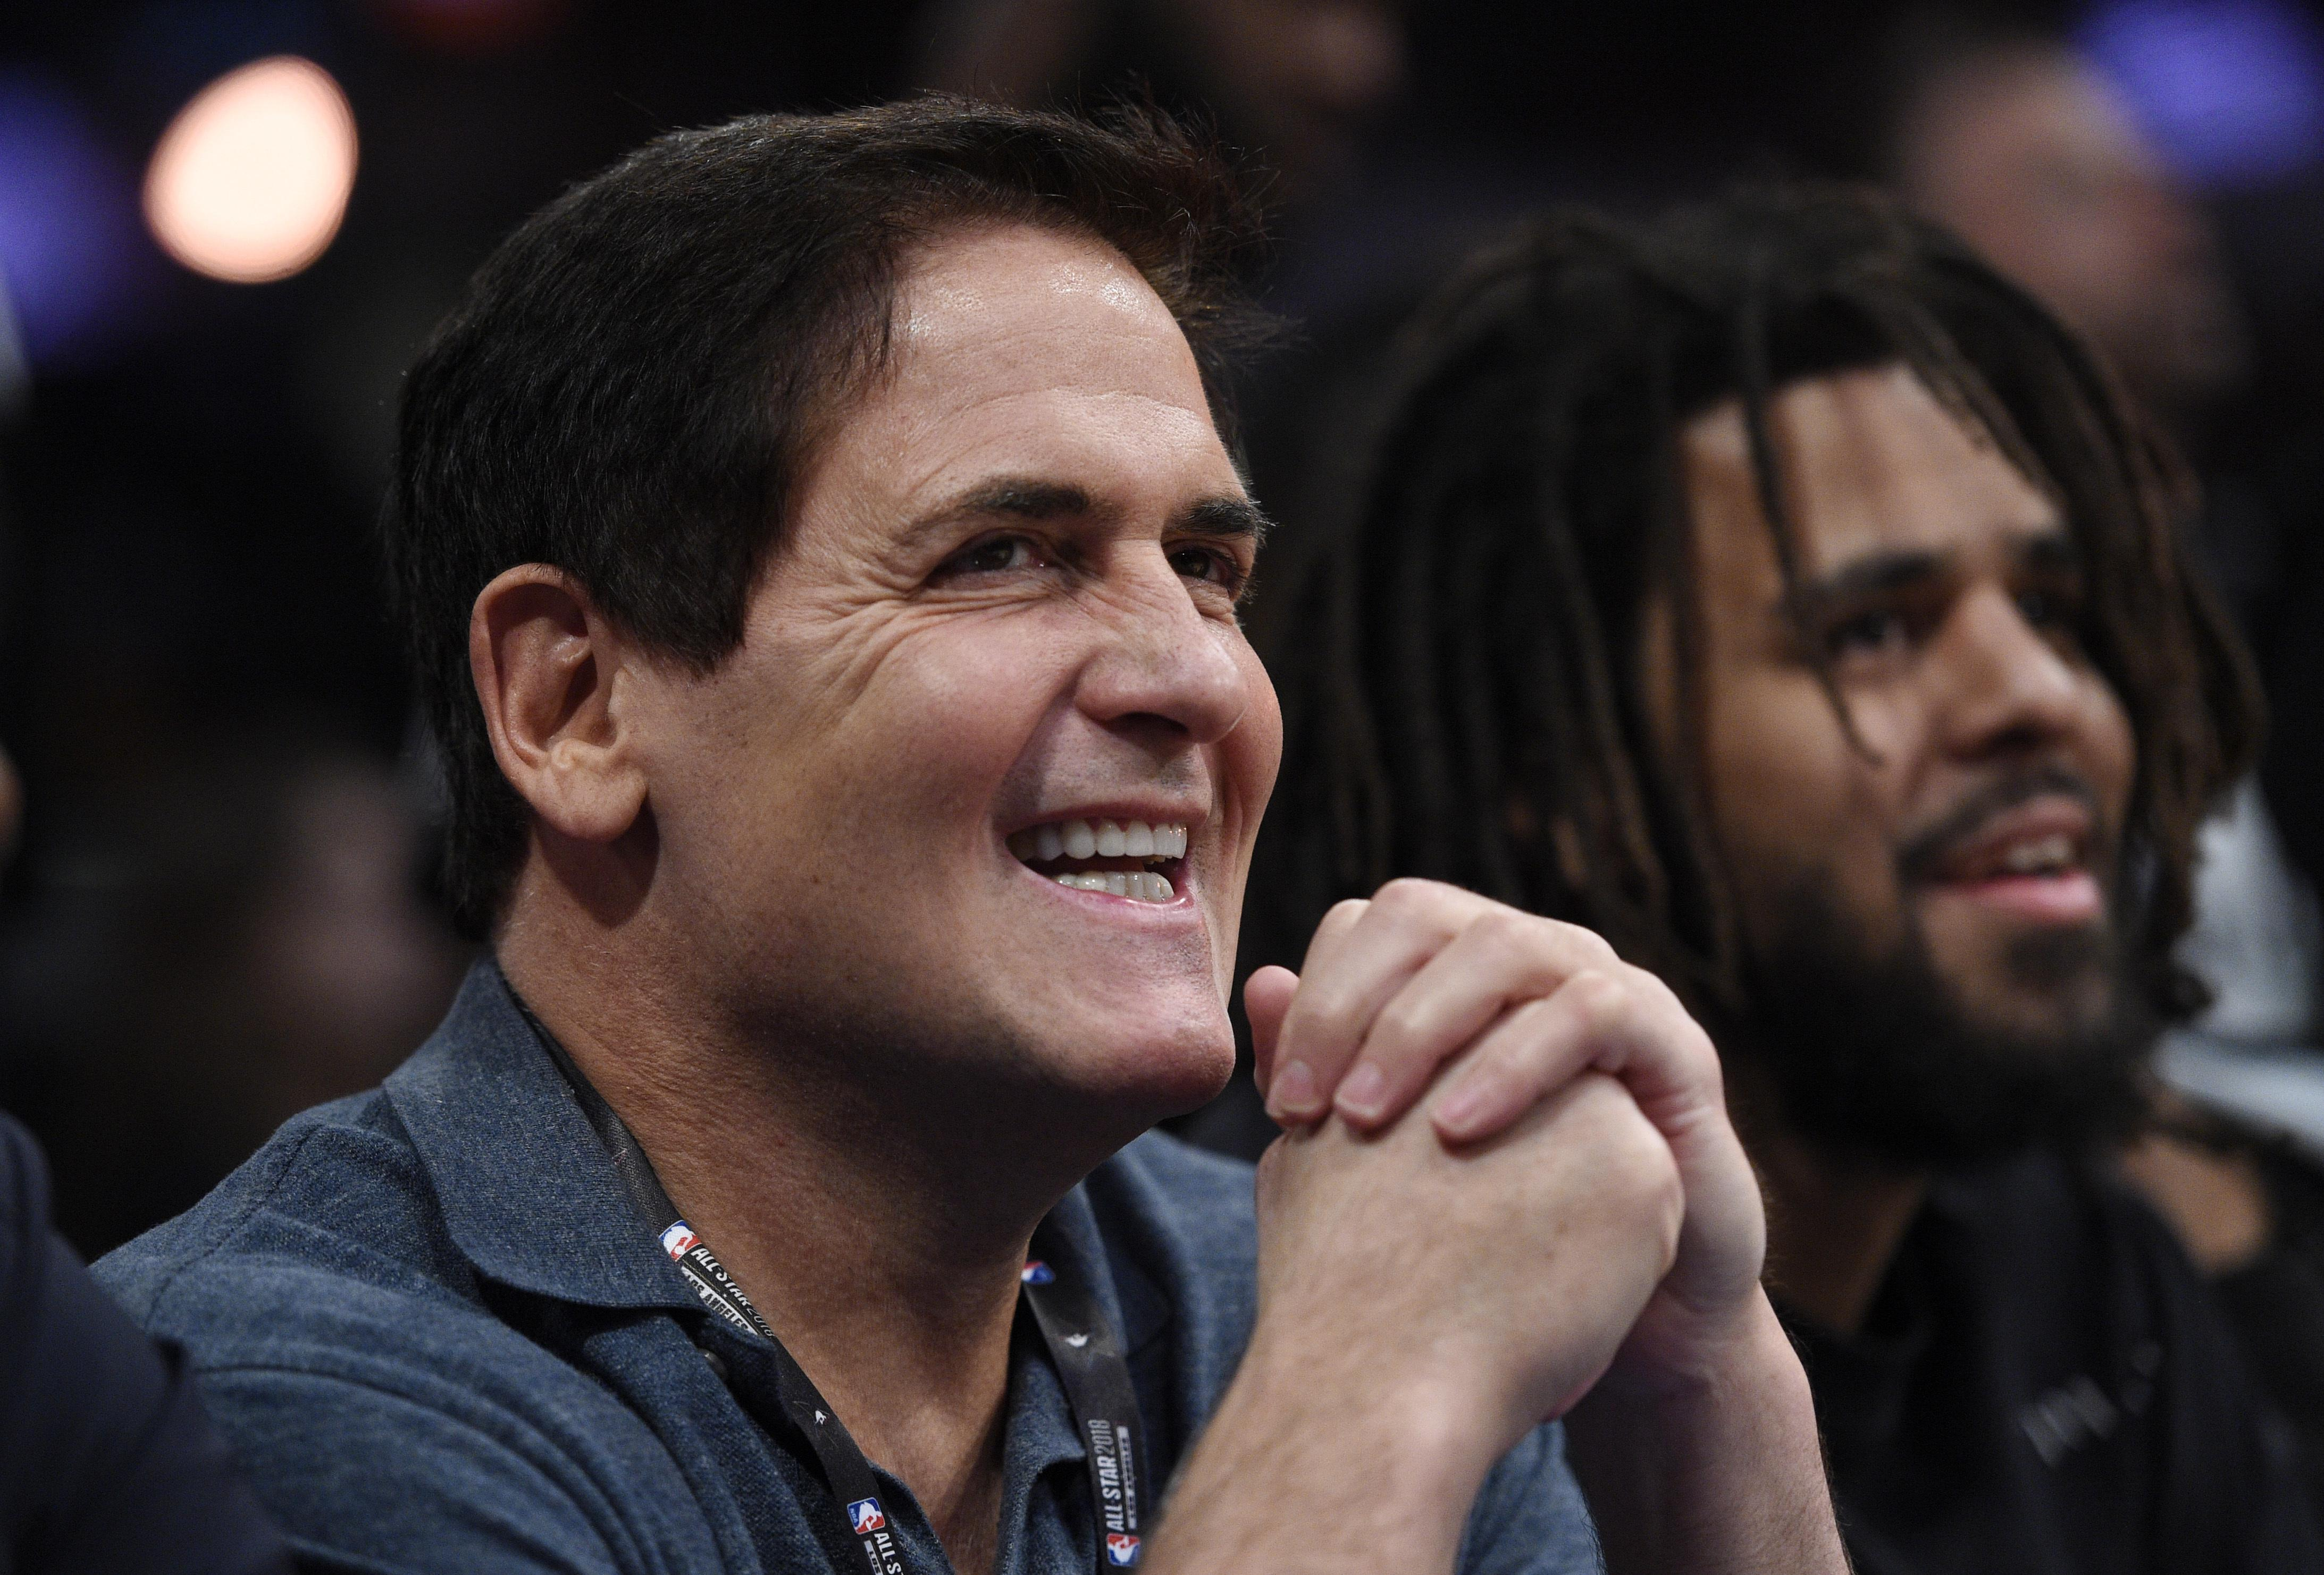 AOC's pronouncements have just become 'headline porn' for media, Mark Cuban complains